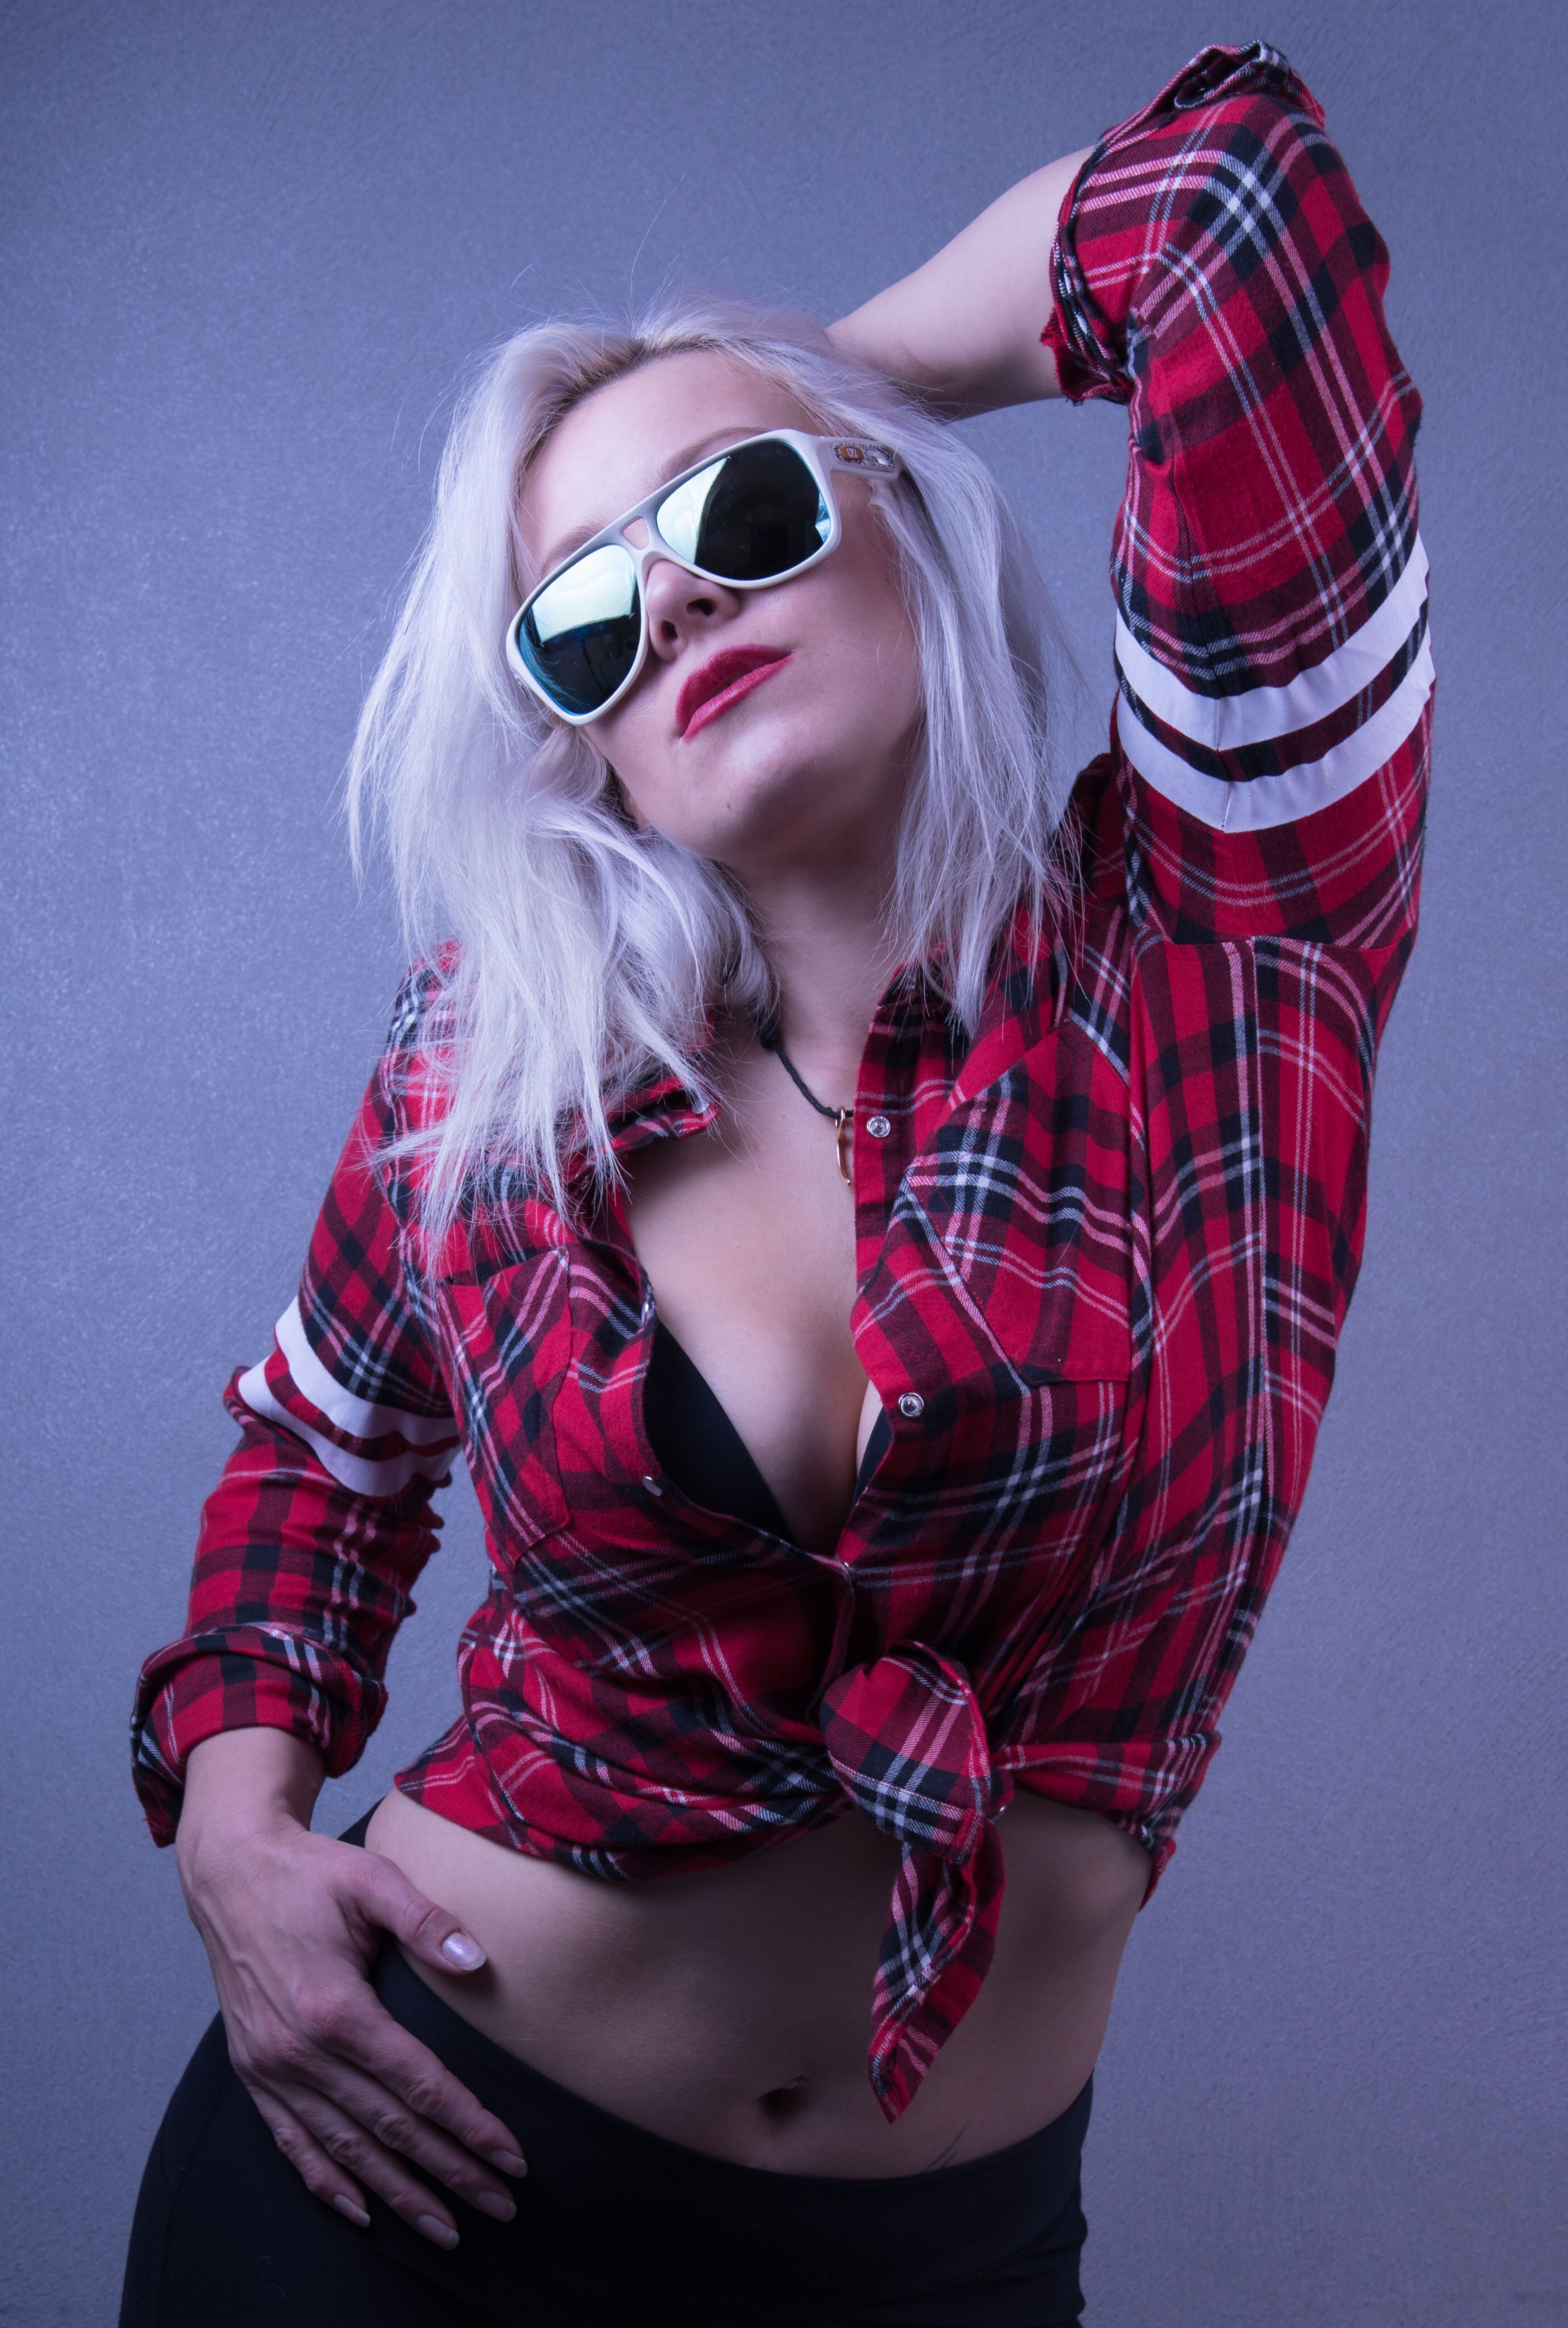 Helina, Finnish paragliding champion, shows some attitude :-) Sunglasses Blond Hair One Person Young Adult Music Studio Shot Young Women Beautiful Woman People Adult Adults Only Portrait One Young Woman Only Human Body Part One Woman Only Day